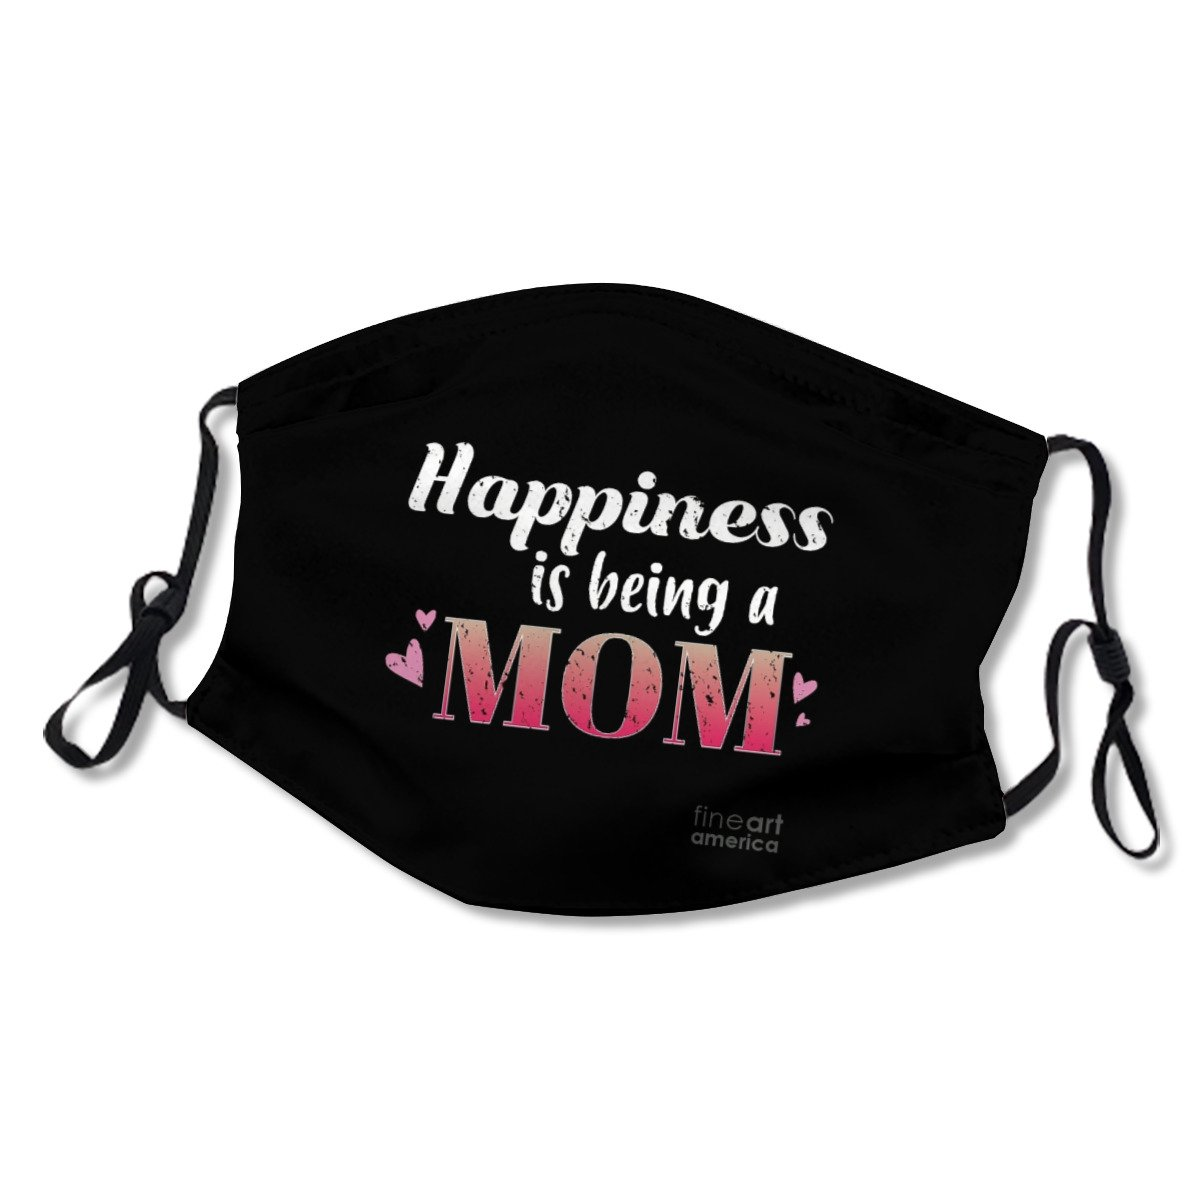 Happiness is being a Mom Face Masj